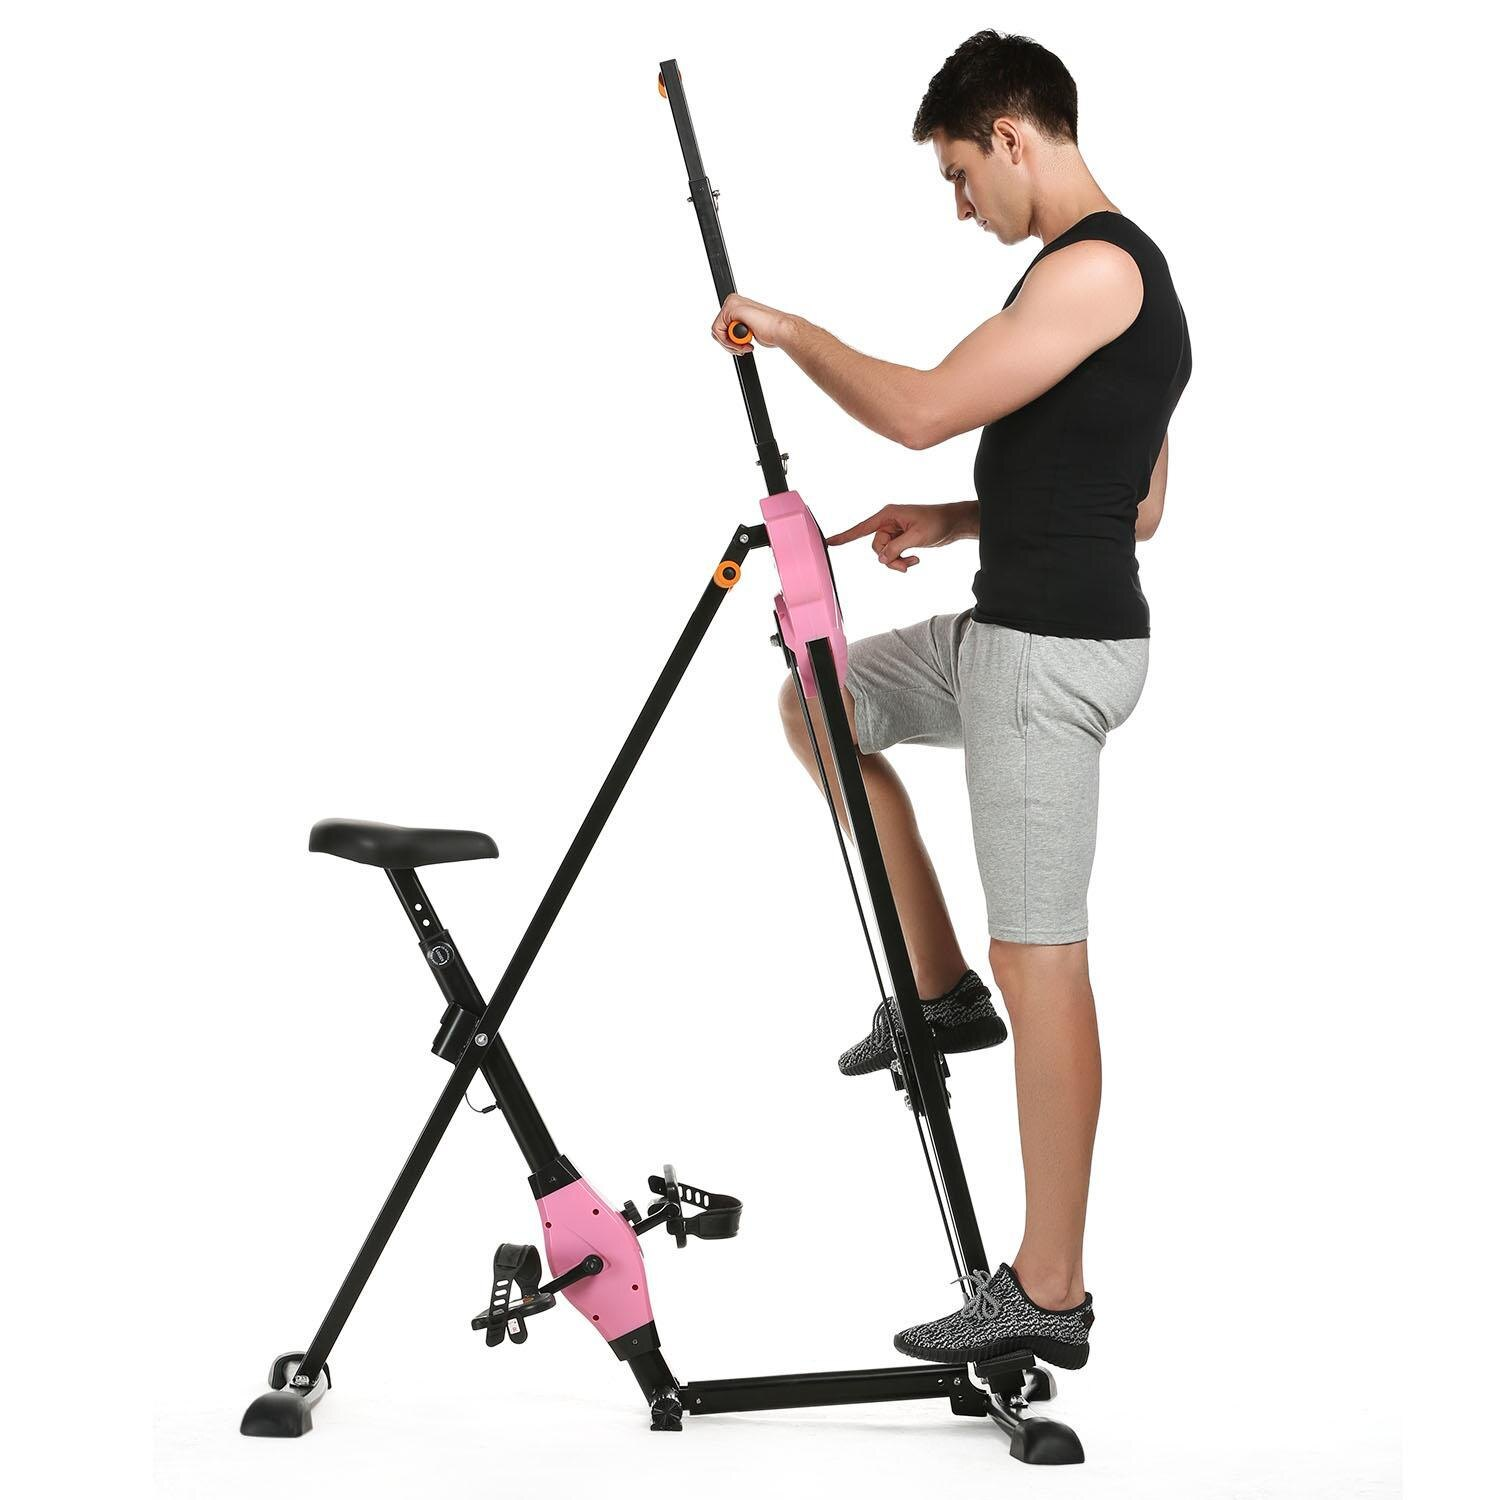 Vertical Climber Gym Exercise Fitness Machine Stepper Cardio Workout Training non-stick grips Legs Arms Abs Calf 0